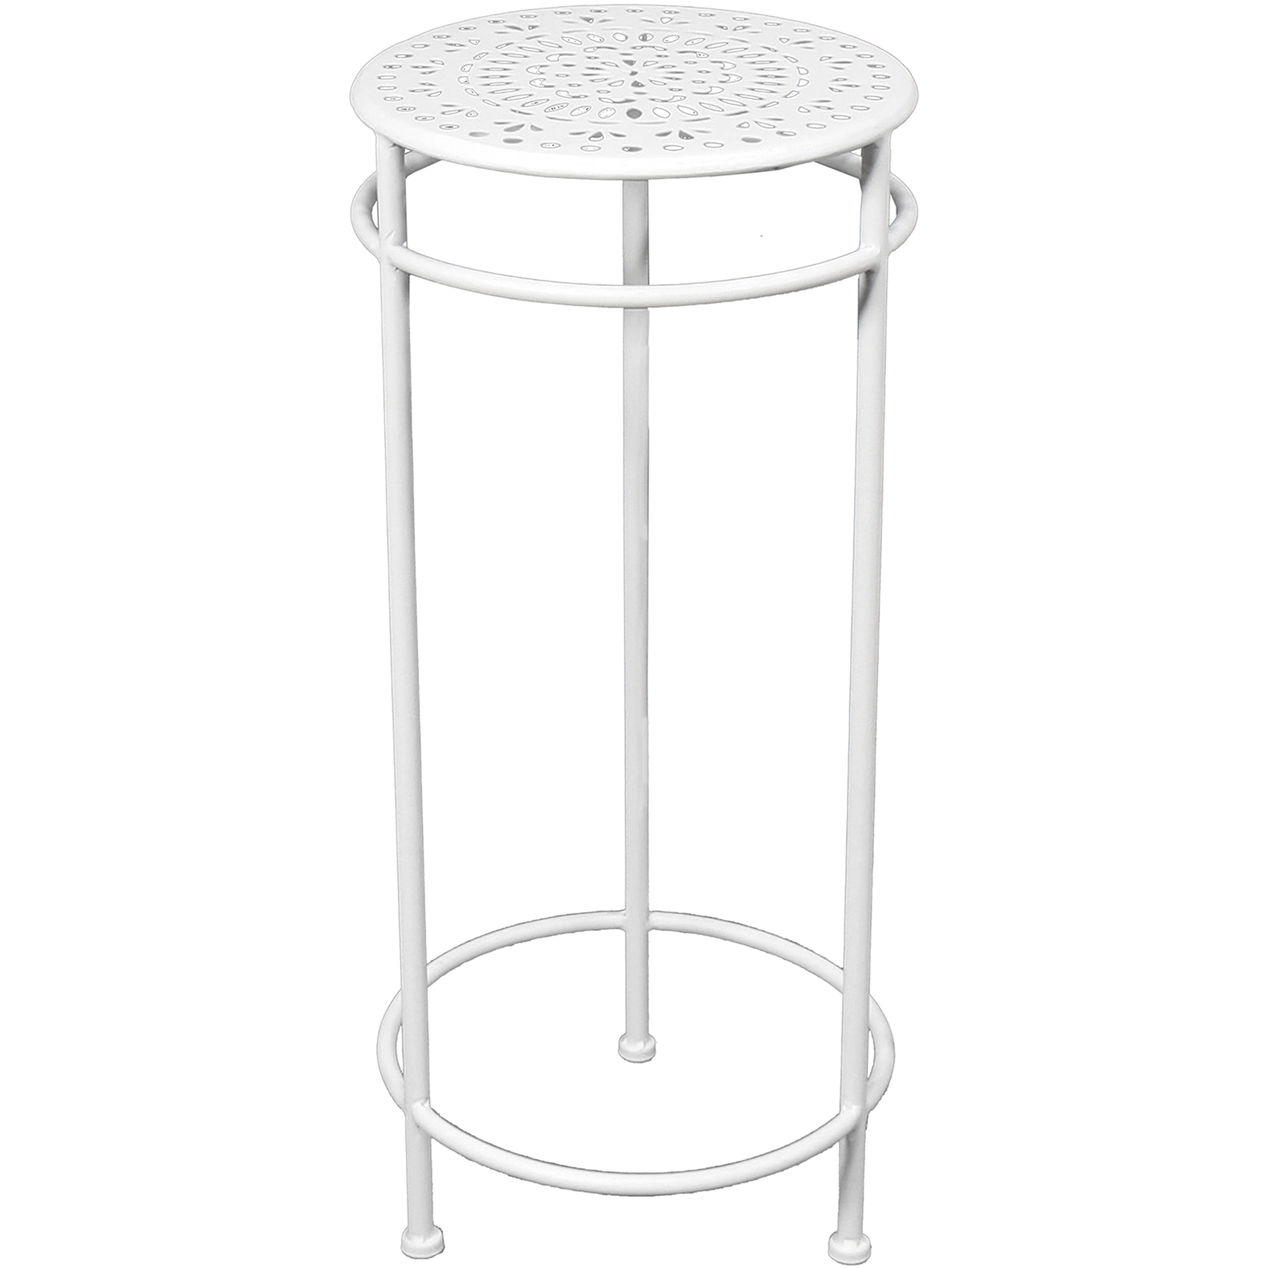 zara pltstnd wht home accent table zoom green console west elm tripod side asian lamps tall nightstand tables white corner patio umbrella metal hairpin legs emerald butler coffee